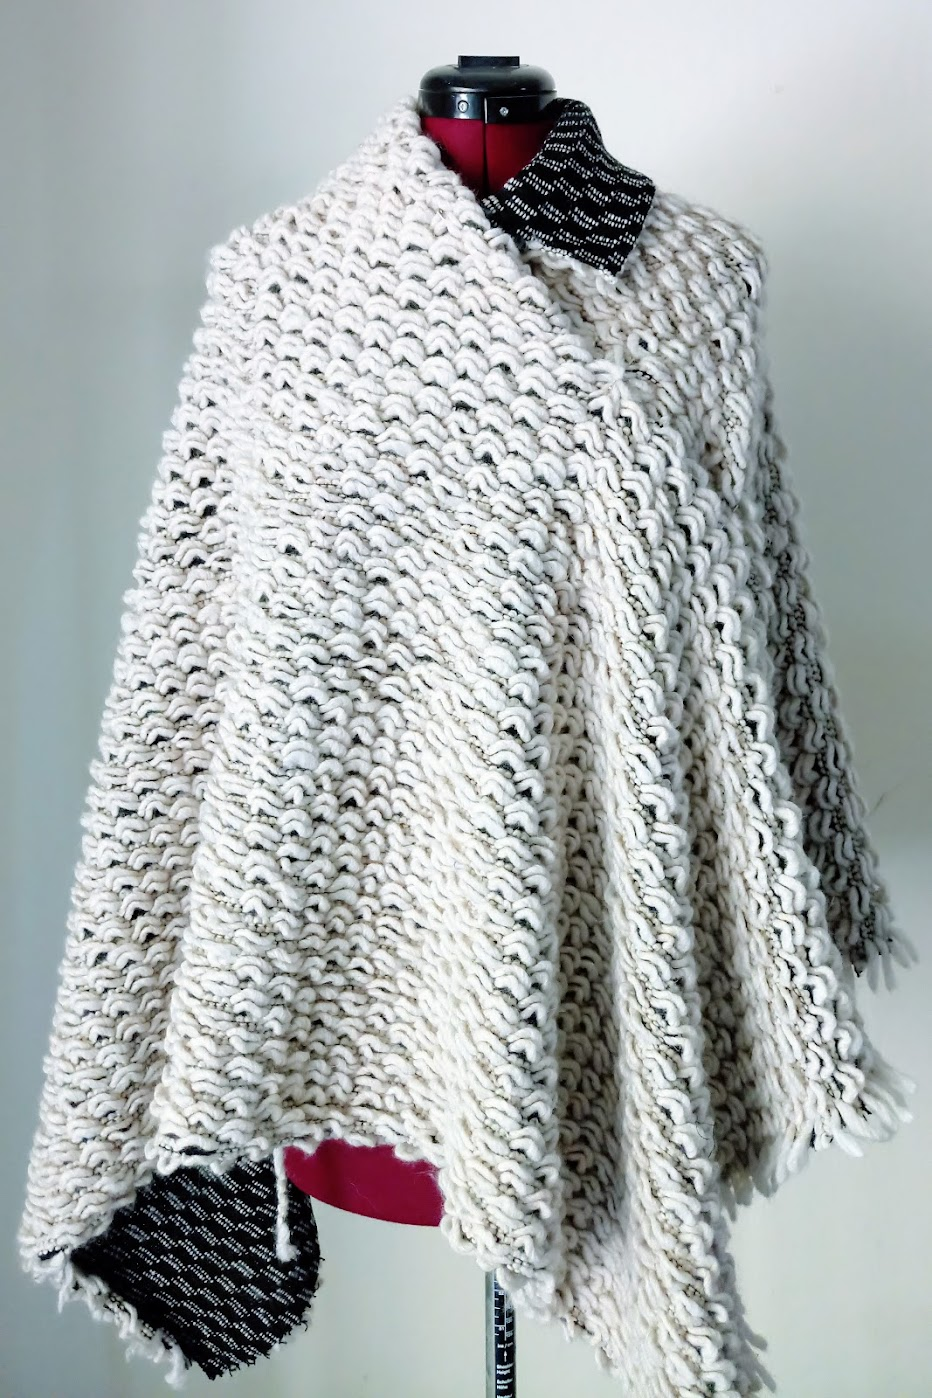 In-Progress: Asymmetrical Knit Cape - DIY Fashion project | fafafoom.com